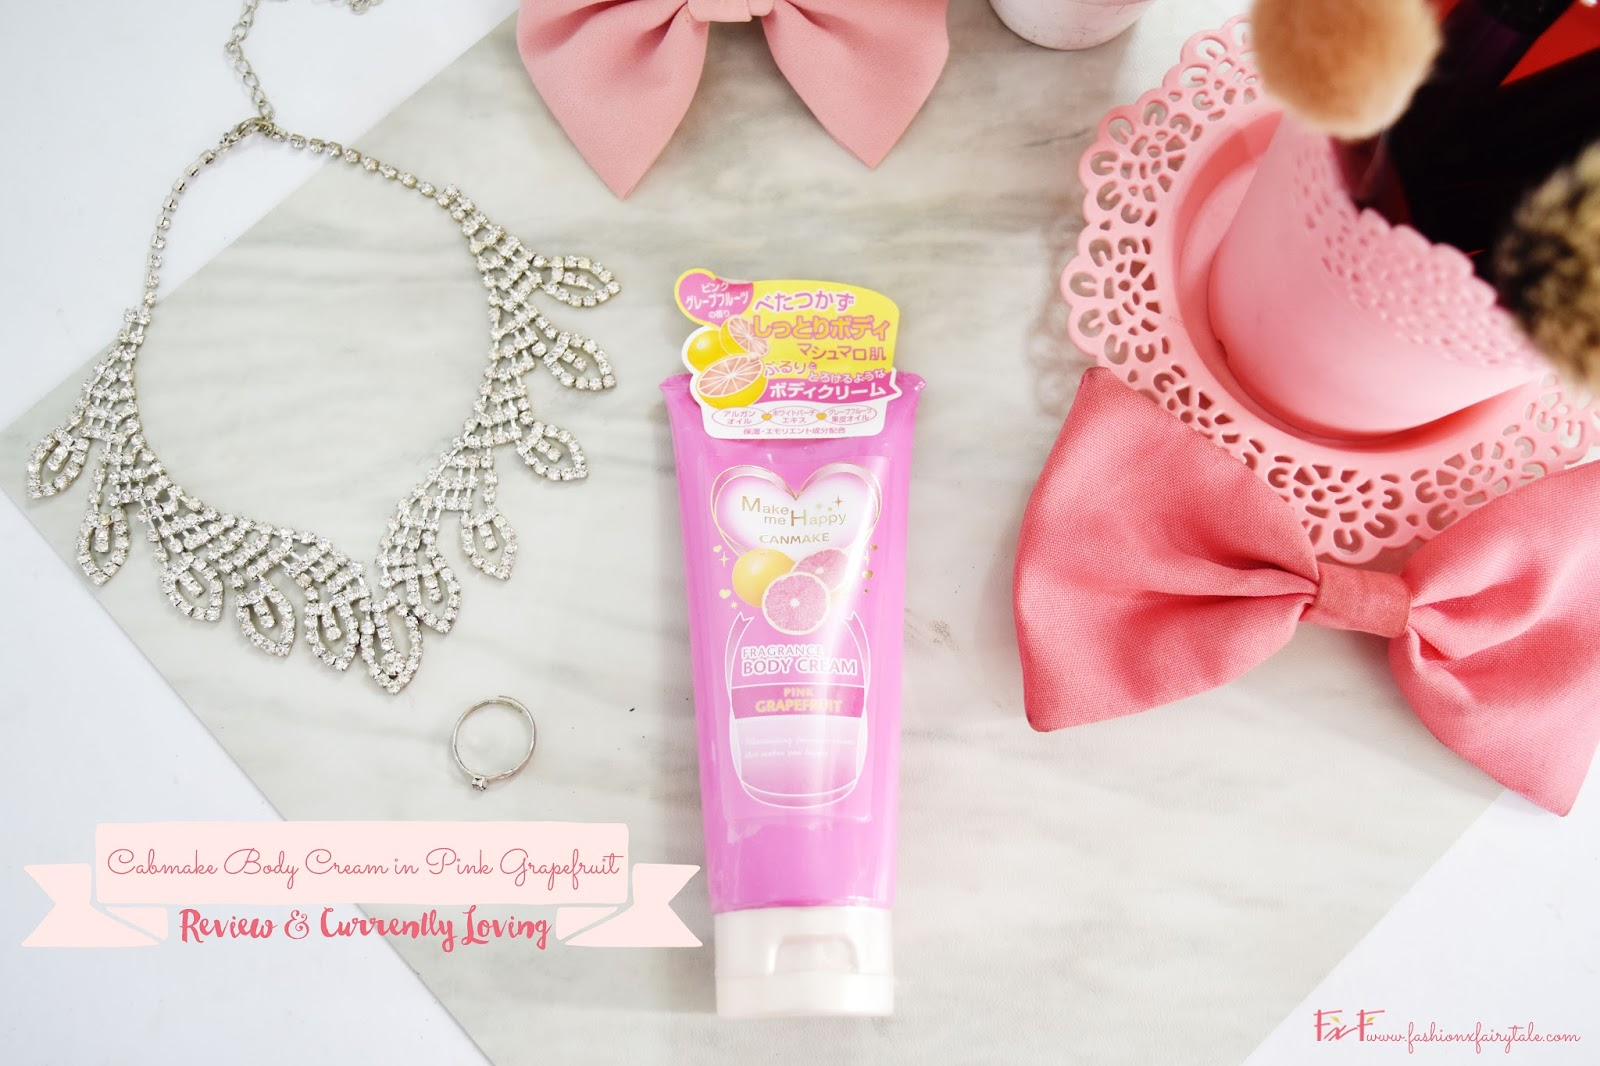 Canmake Body Cream in Pink Grapefruit | Review & Currently Loving